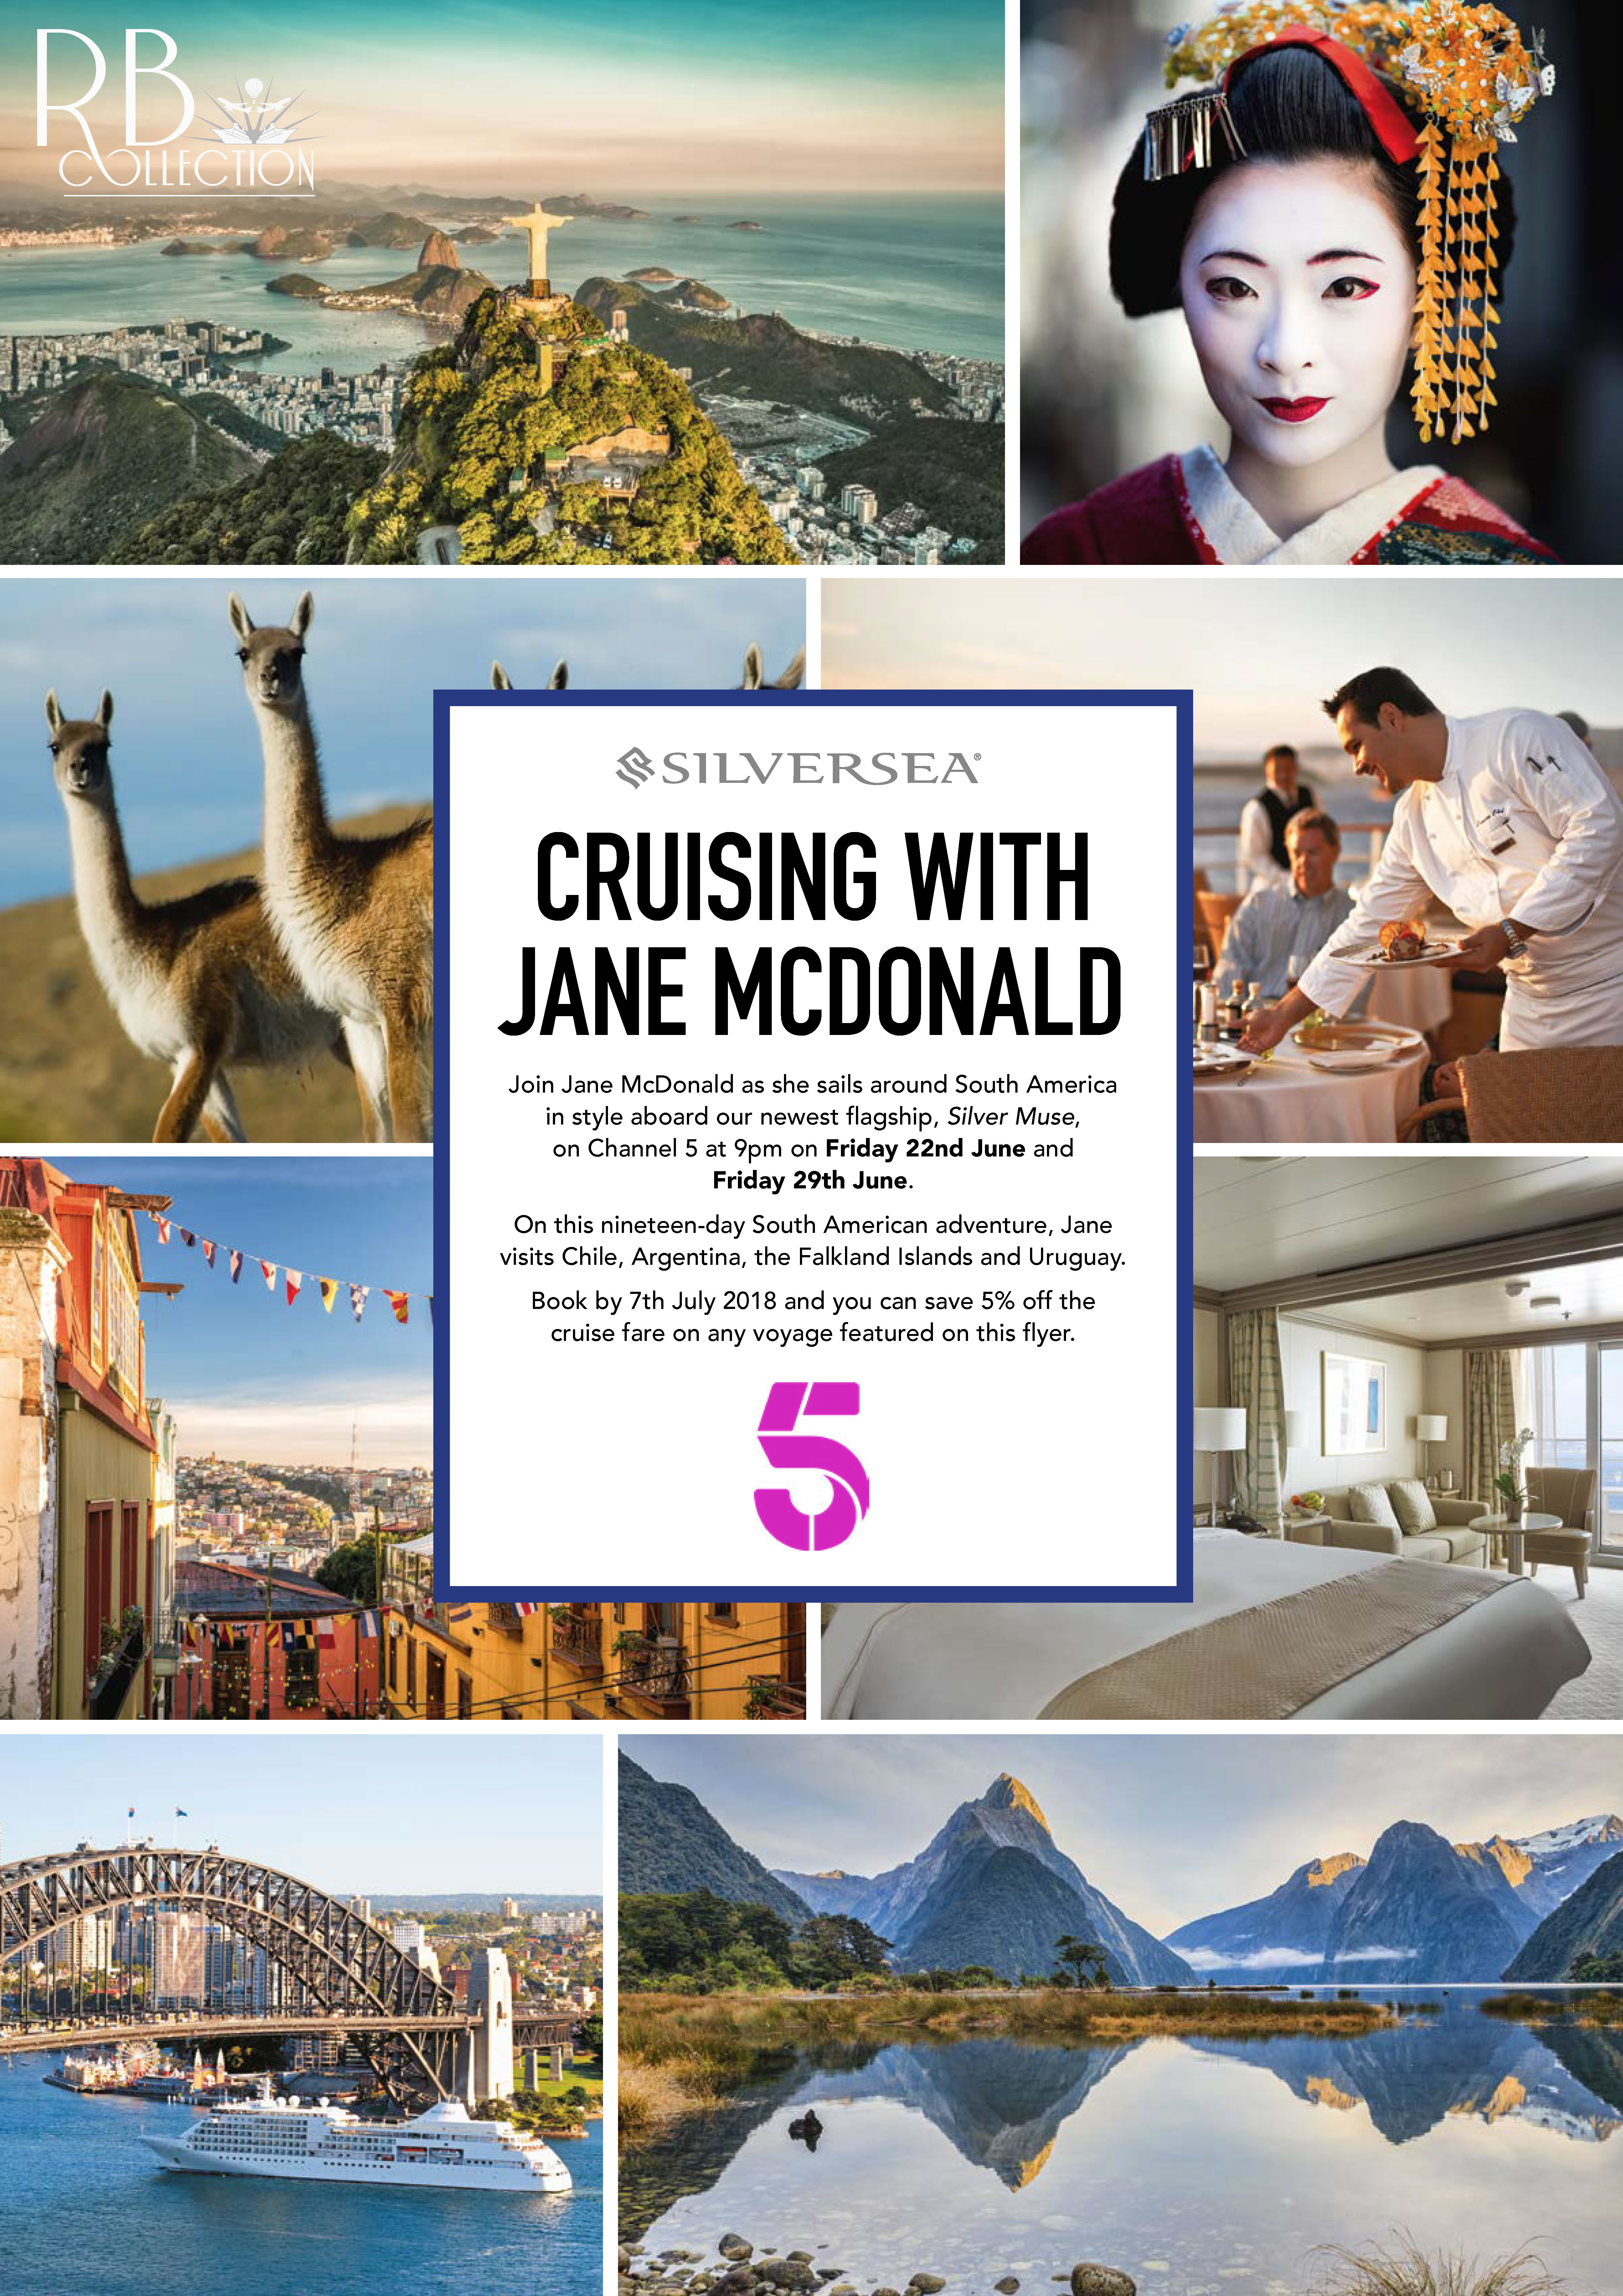 Special Offer Silversea Cruising With Jane Mcdonald